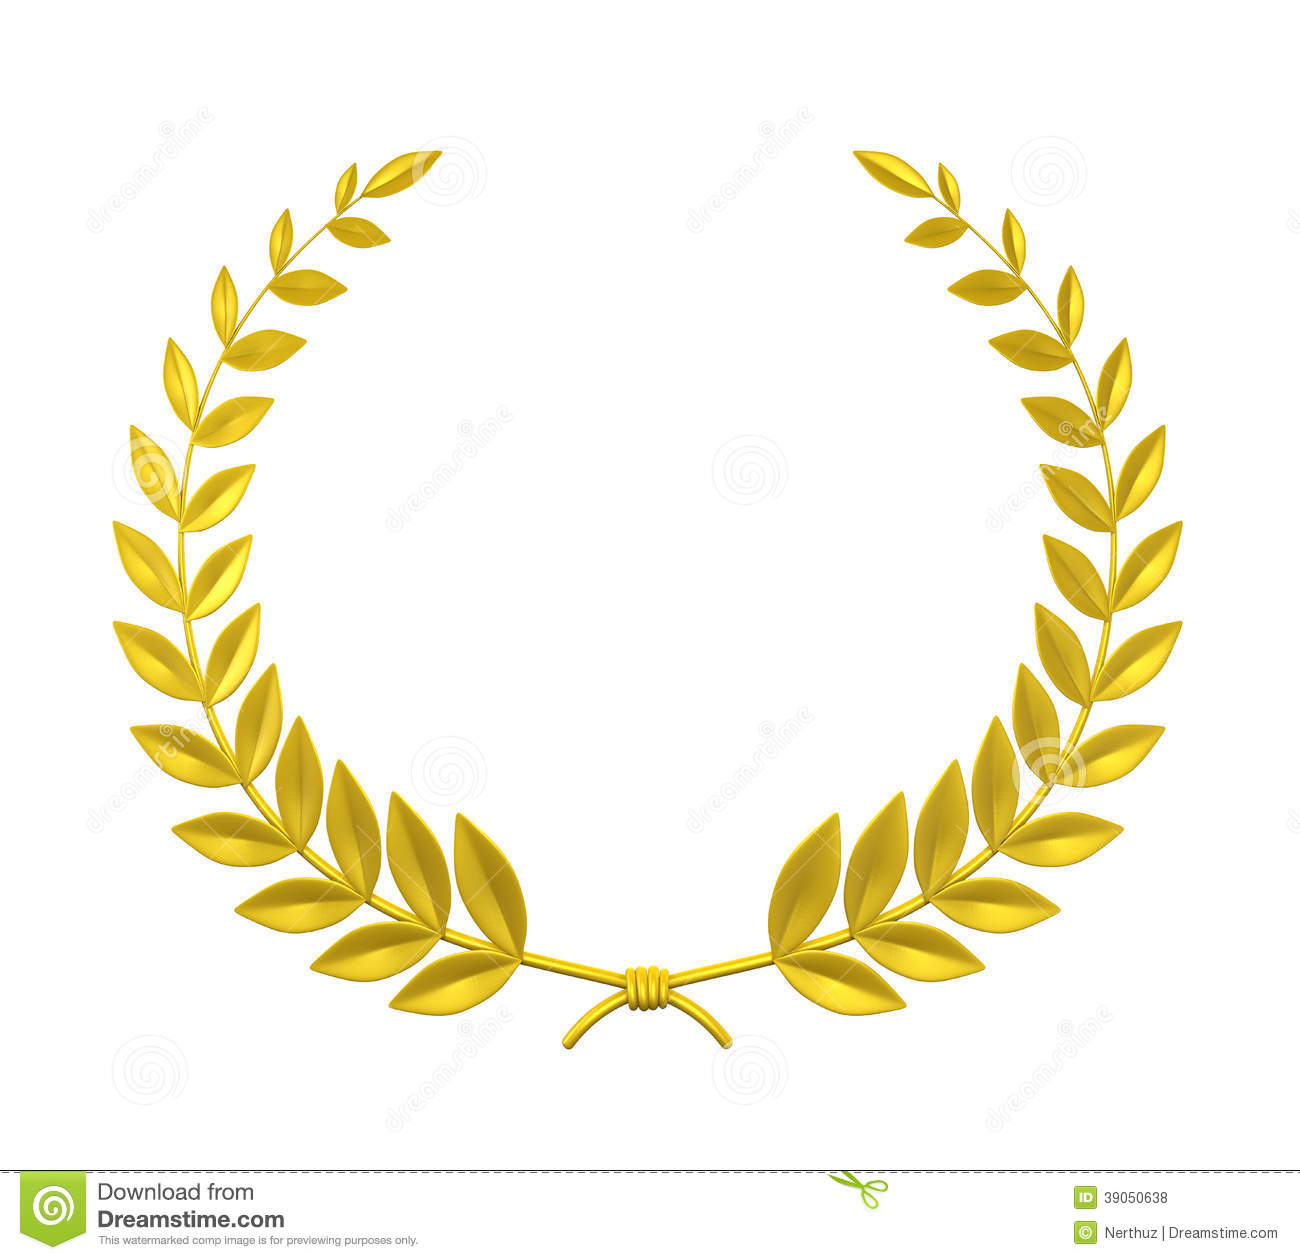 Symbol clipart funeral Gold cliparts Wreath Wreath Clipart